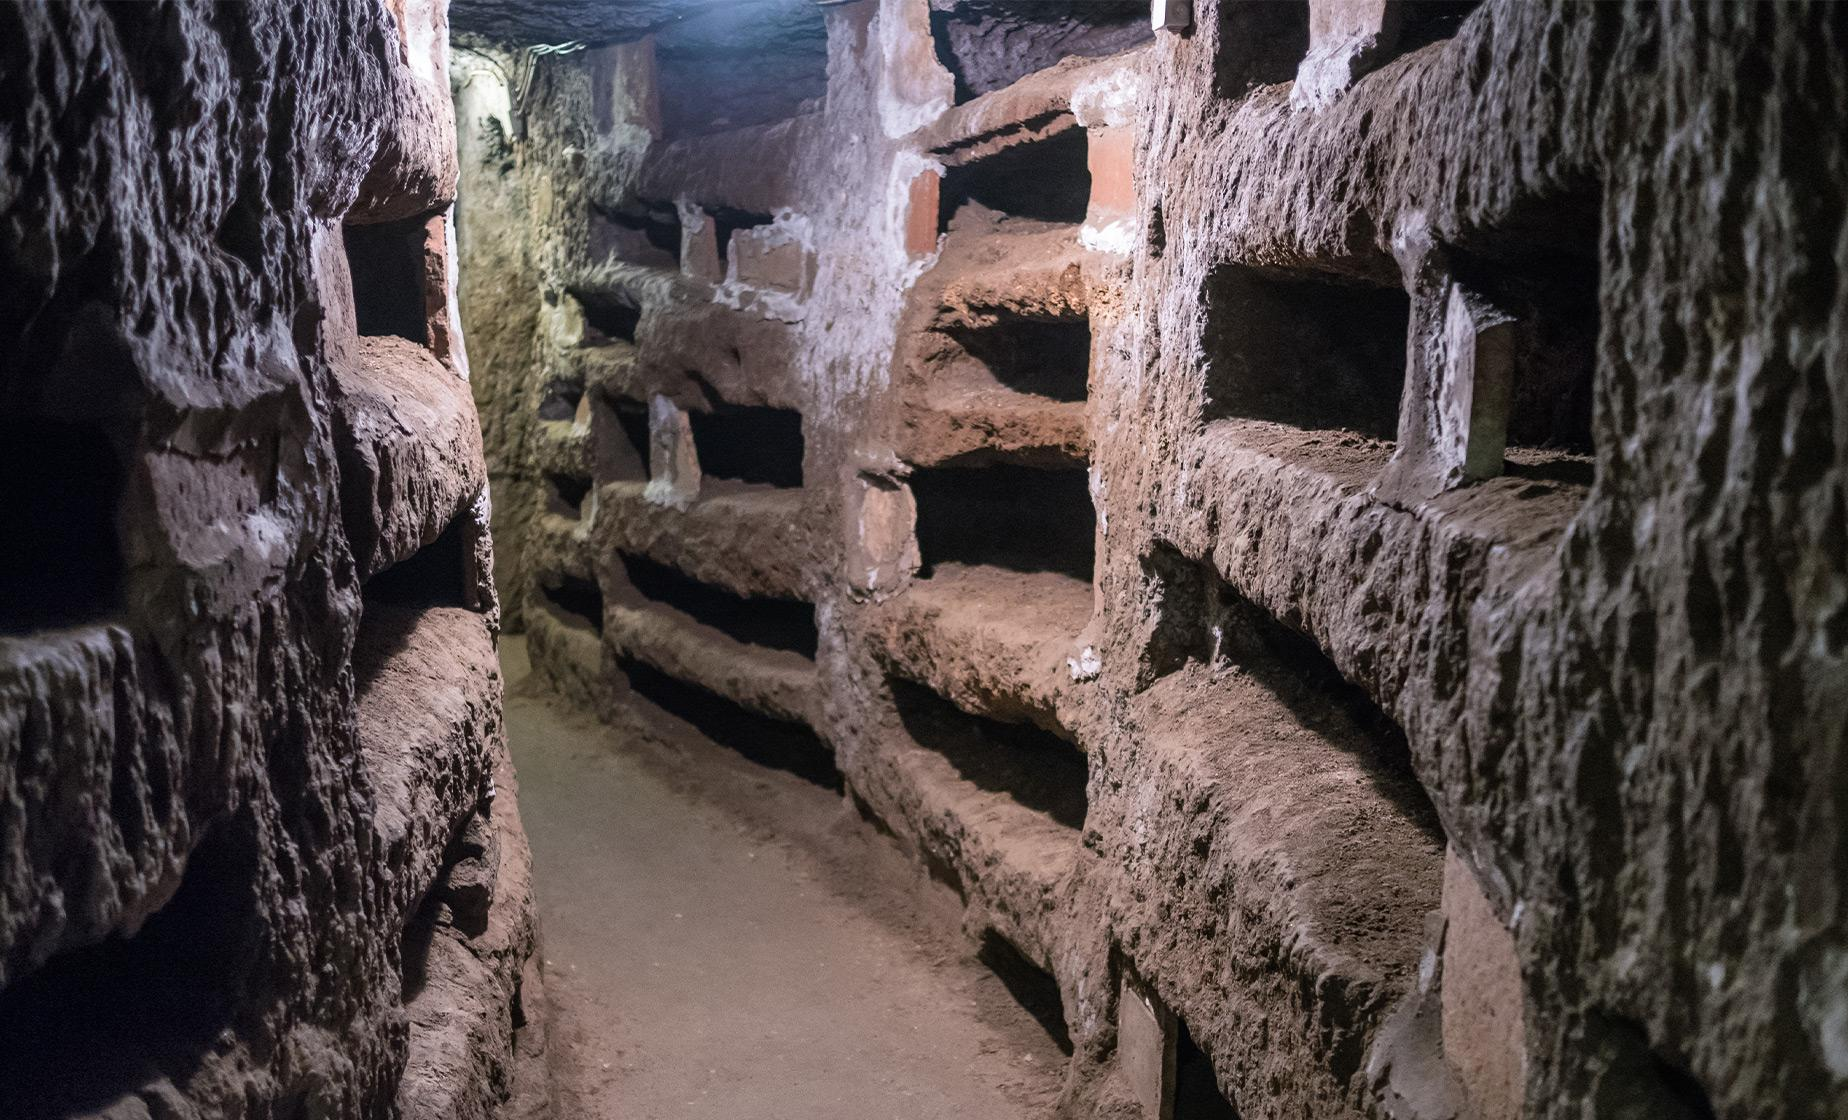 Catacombs, Aqueducts & Appian Way Walking Tour in Rome